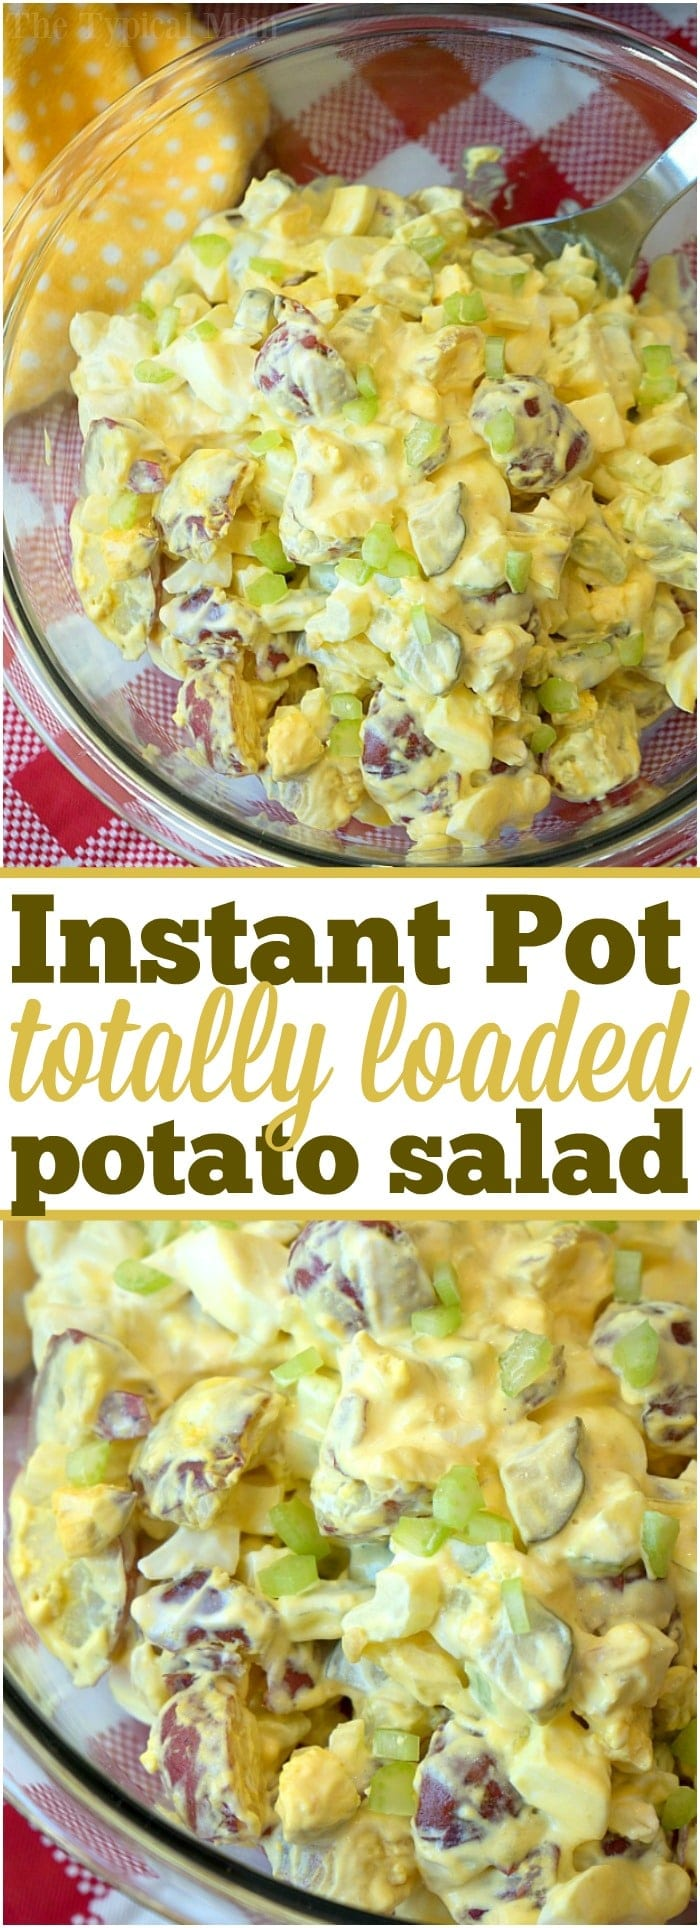 This is the most amazing Instant Pot potato salad you'll ever make in just 5 minutes! Loaded with eggs and pickles it's the perfect side dish to any meal. #instantpot #pressurecooker #potatosalad #salad #potato #sidedish #easy